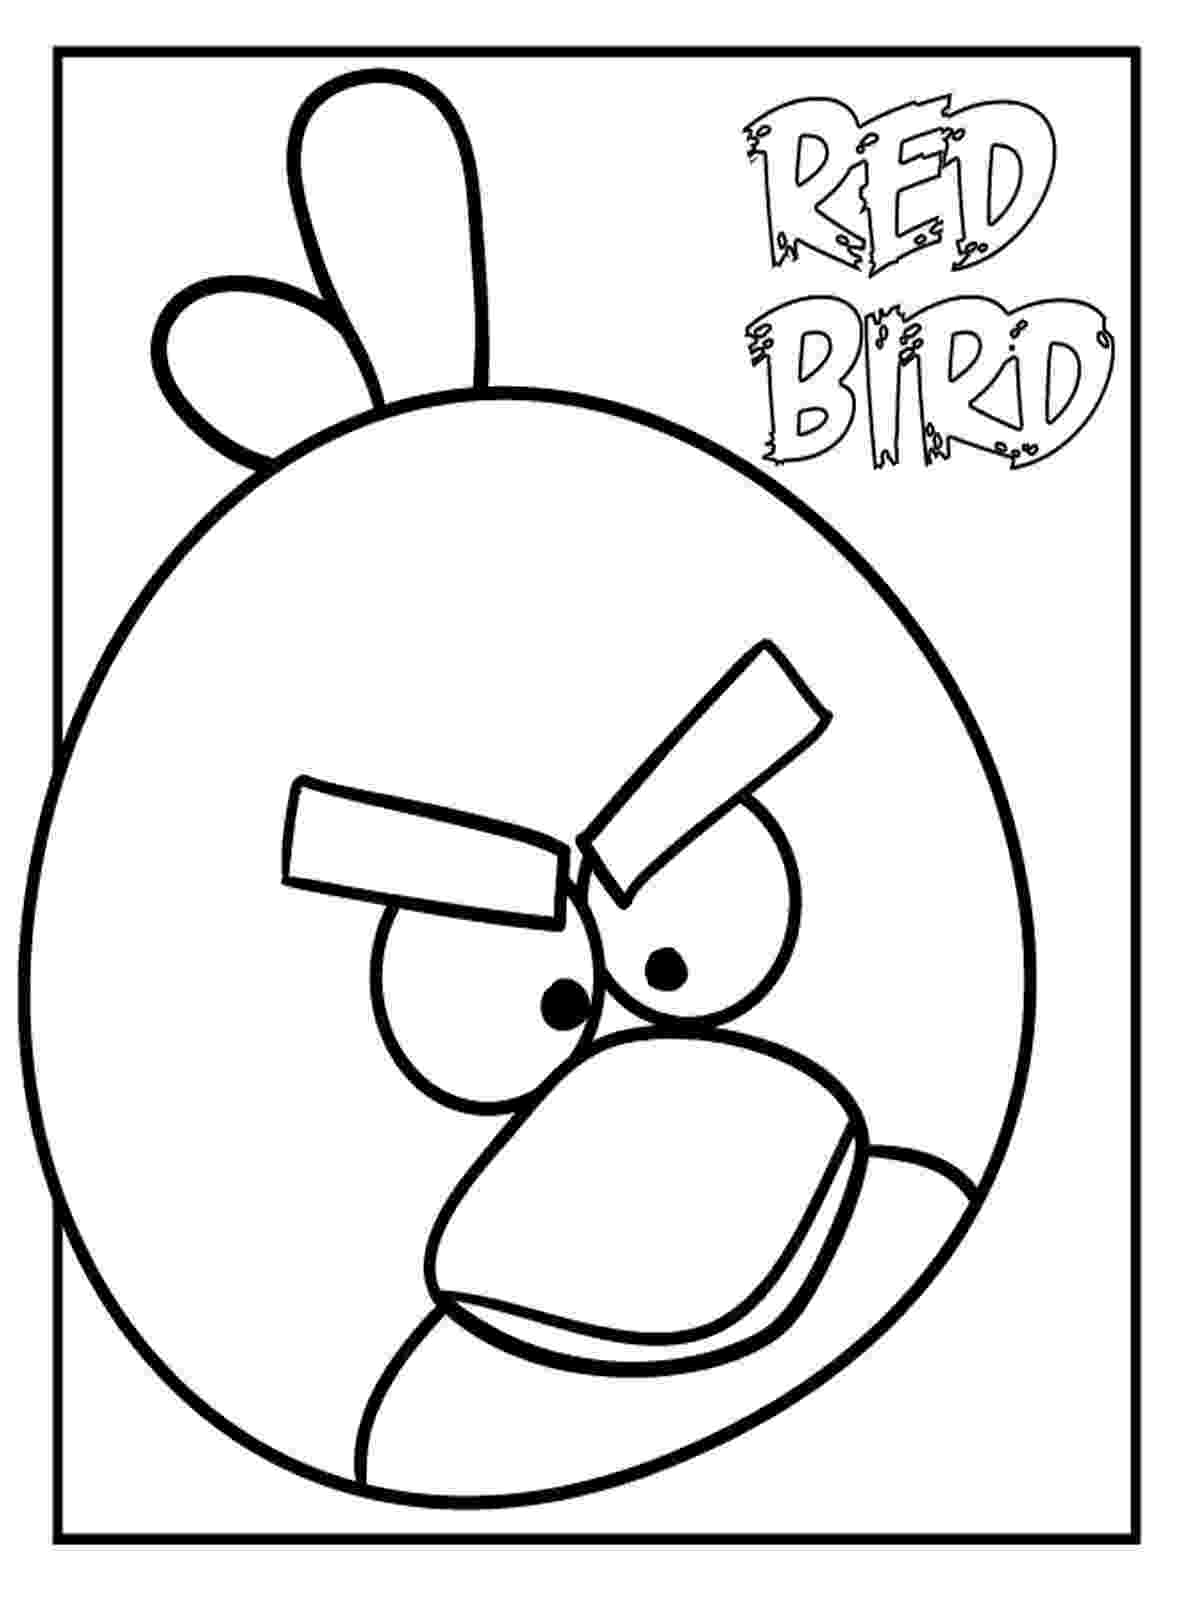 printable bird coloring pages free tweety bird coloring pages bird coloring pages printable